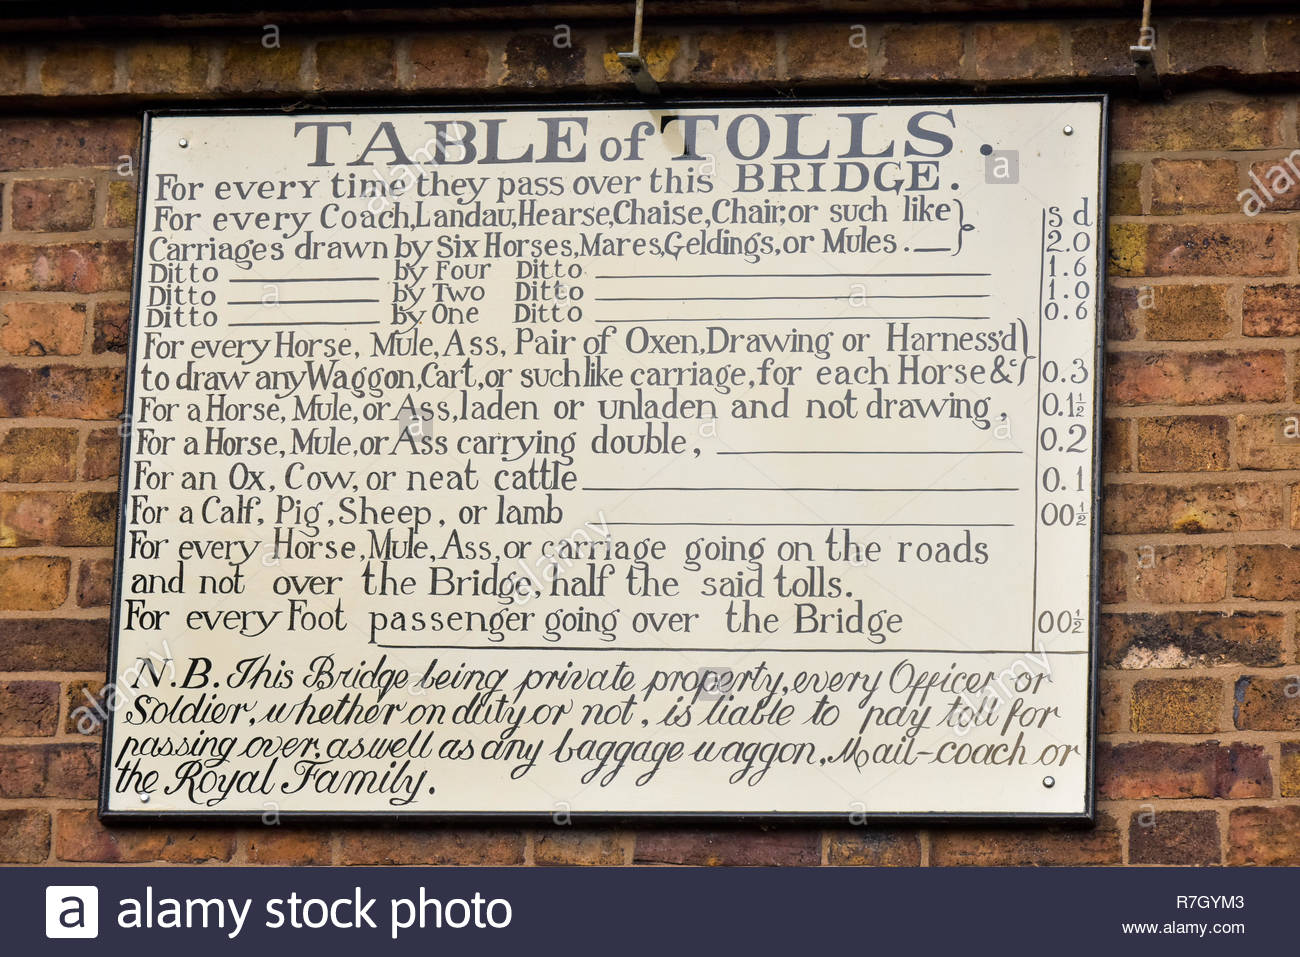 The Table of Tolls sign on the Toll House for the Iron Bridge in Ironbridge, Shropshire, England, UK - Stock Image